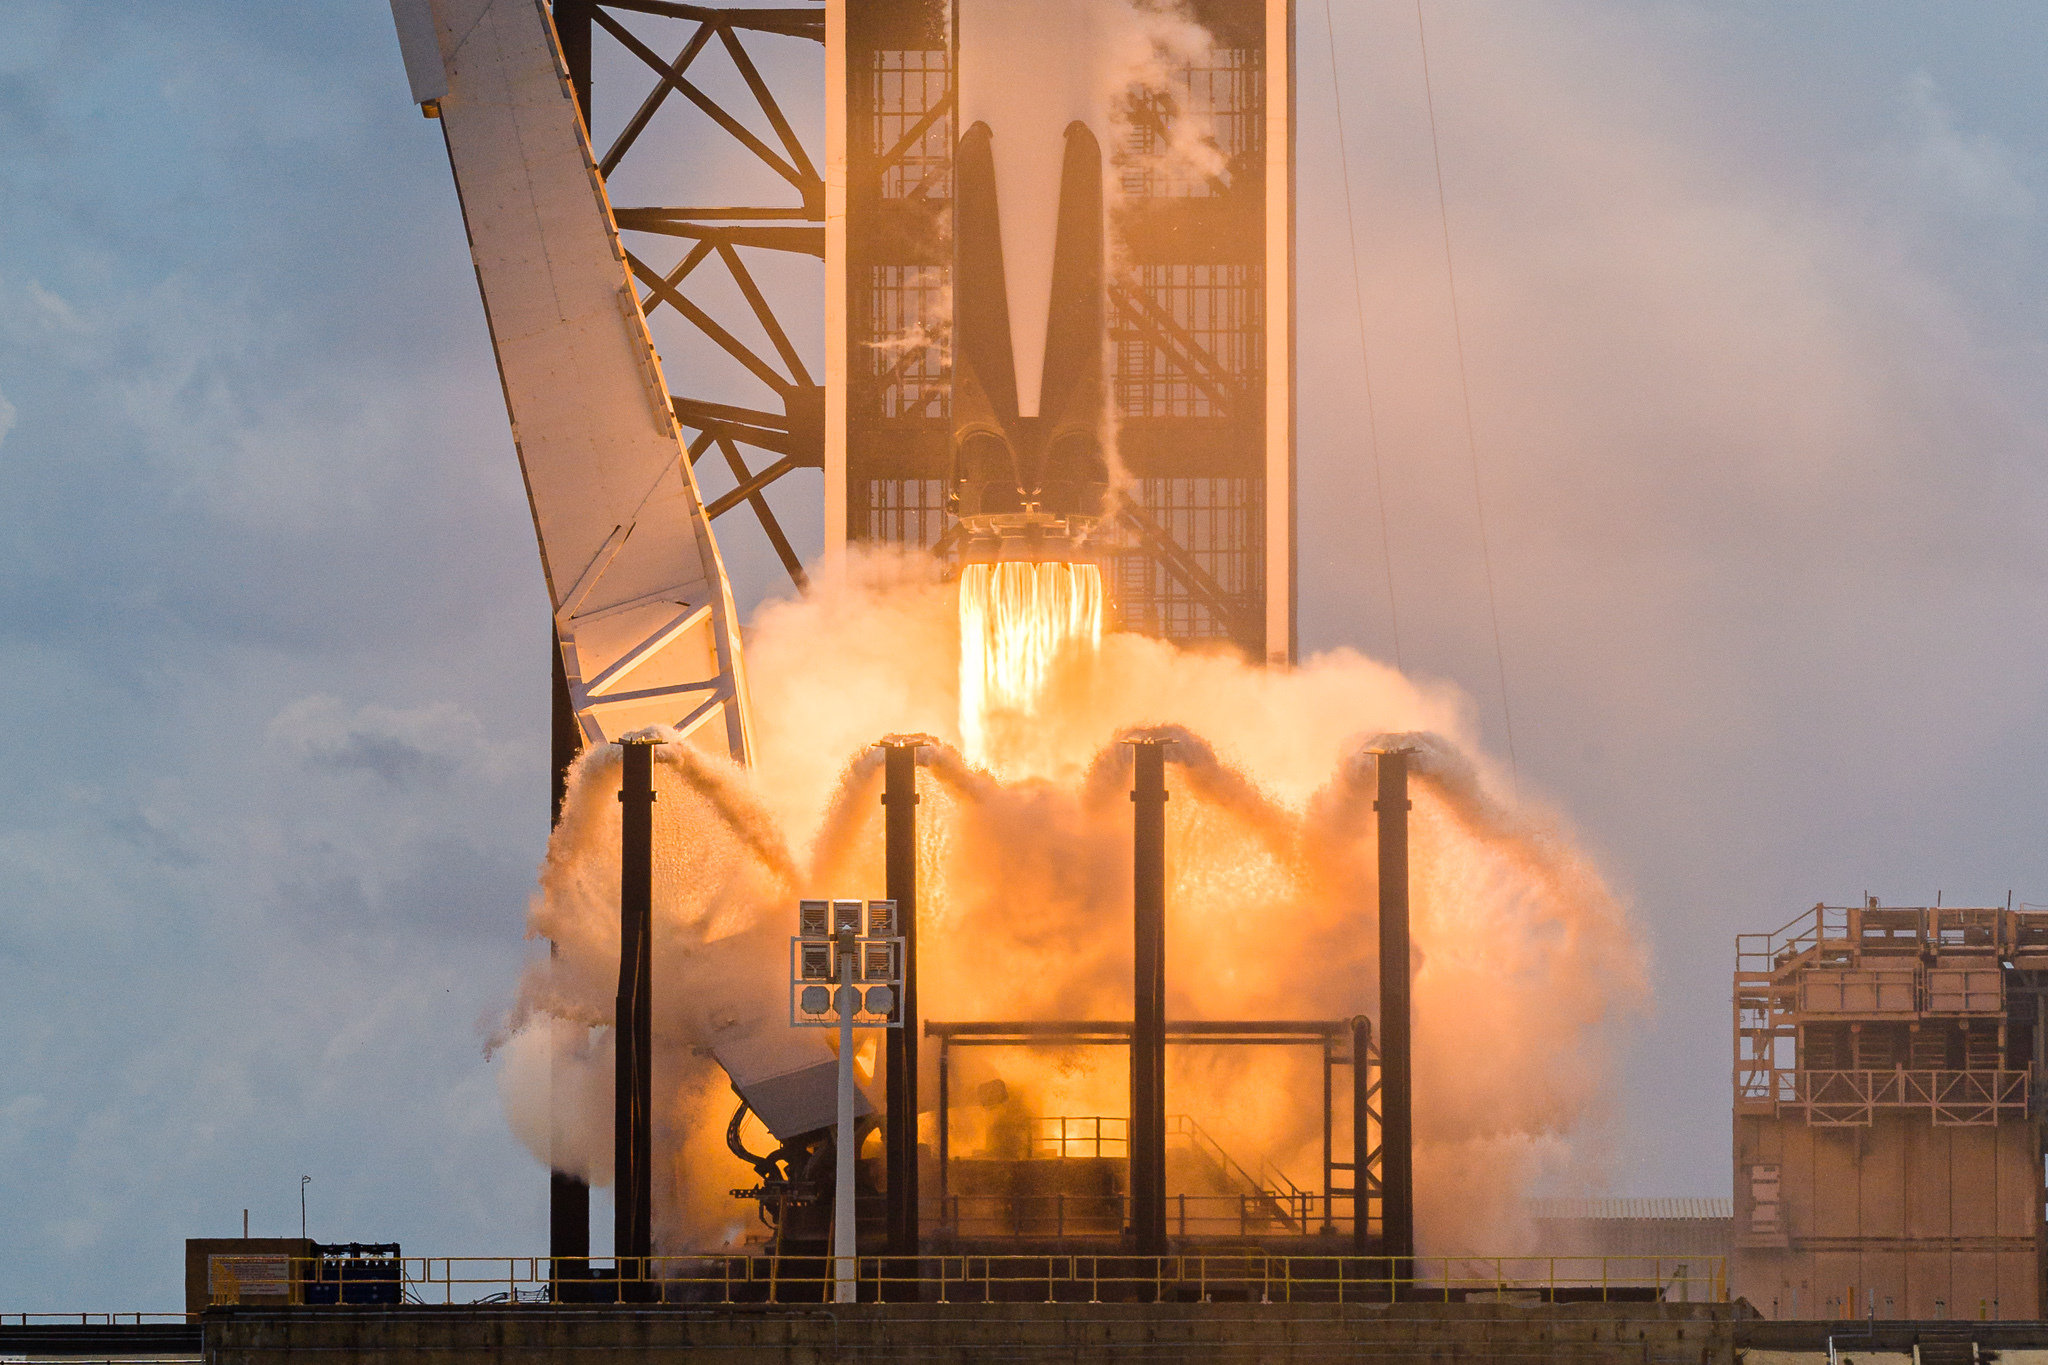 Closer than humanly possible: New launch pad photos capture historic SpaceX liftoff in all its glory